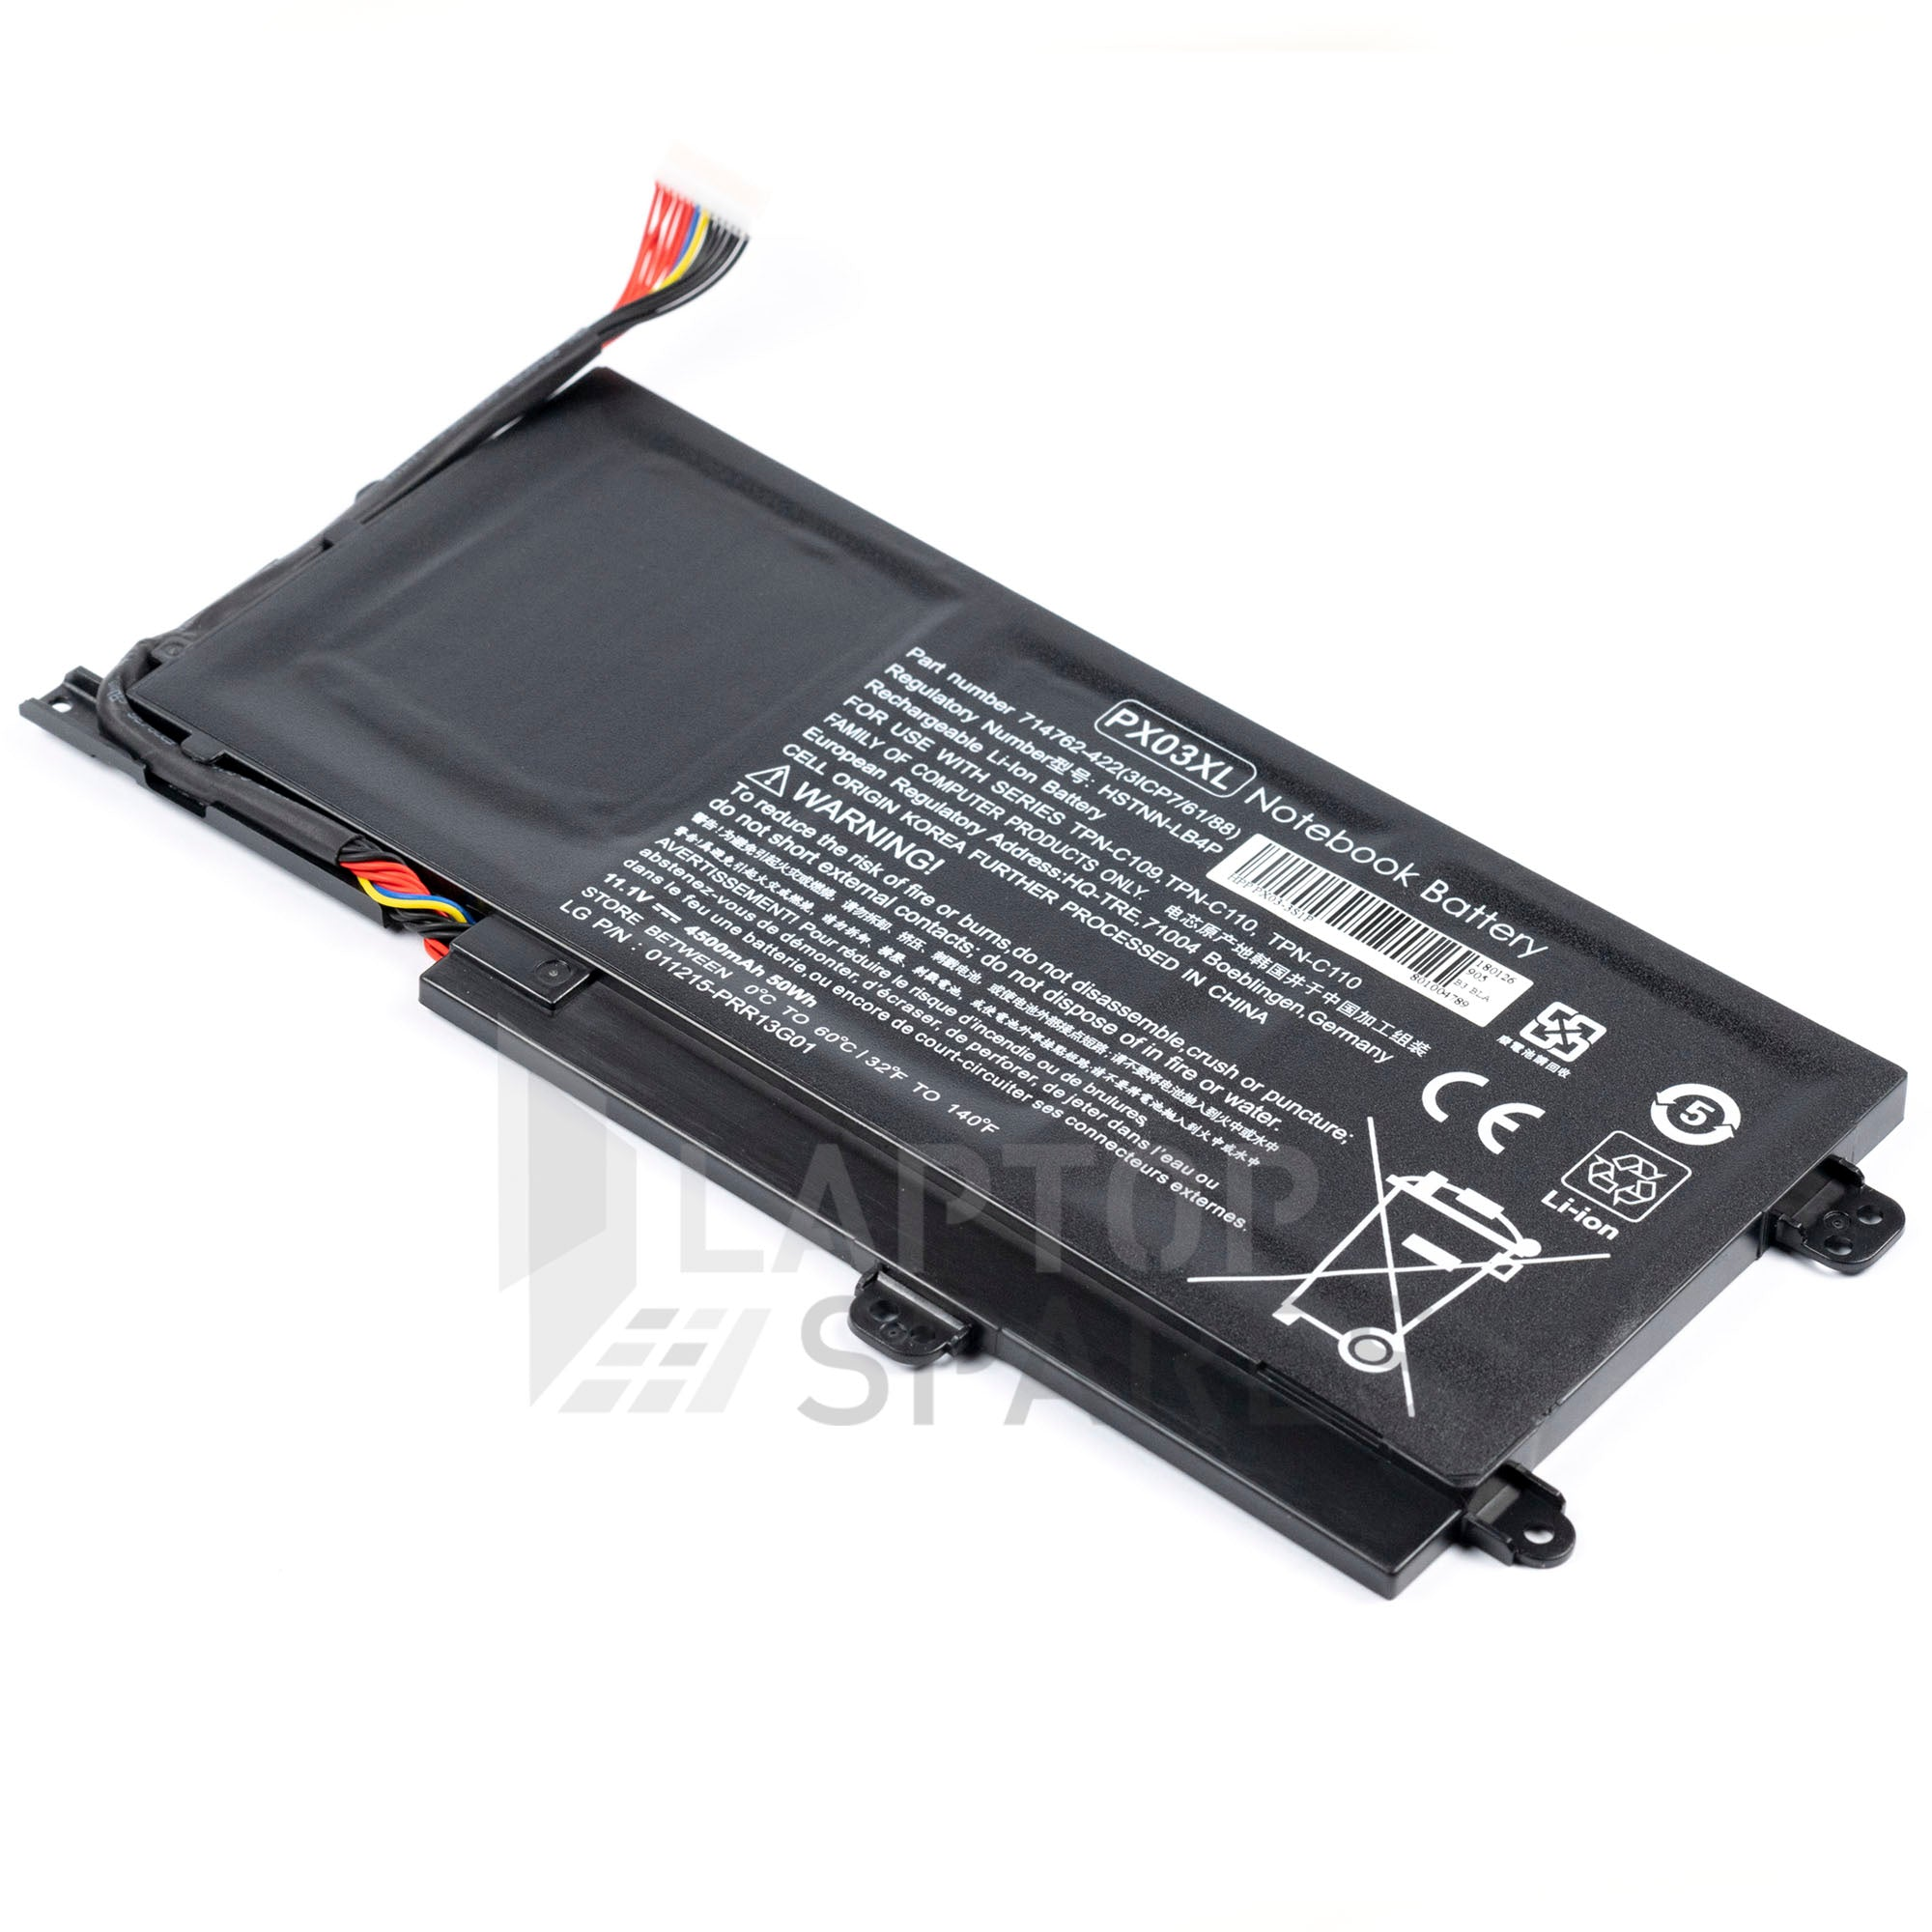 HP ENVY M6 K PX03XL 4500mAh Battery